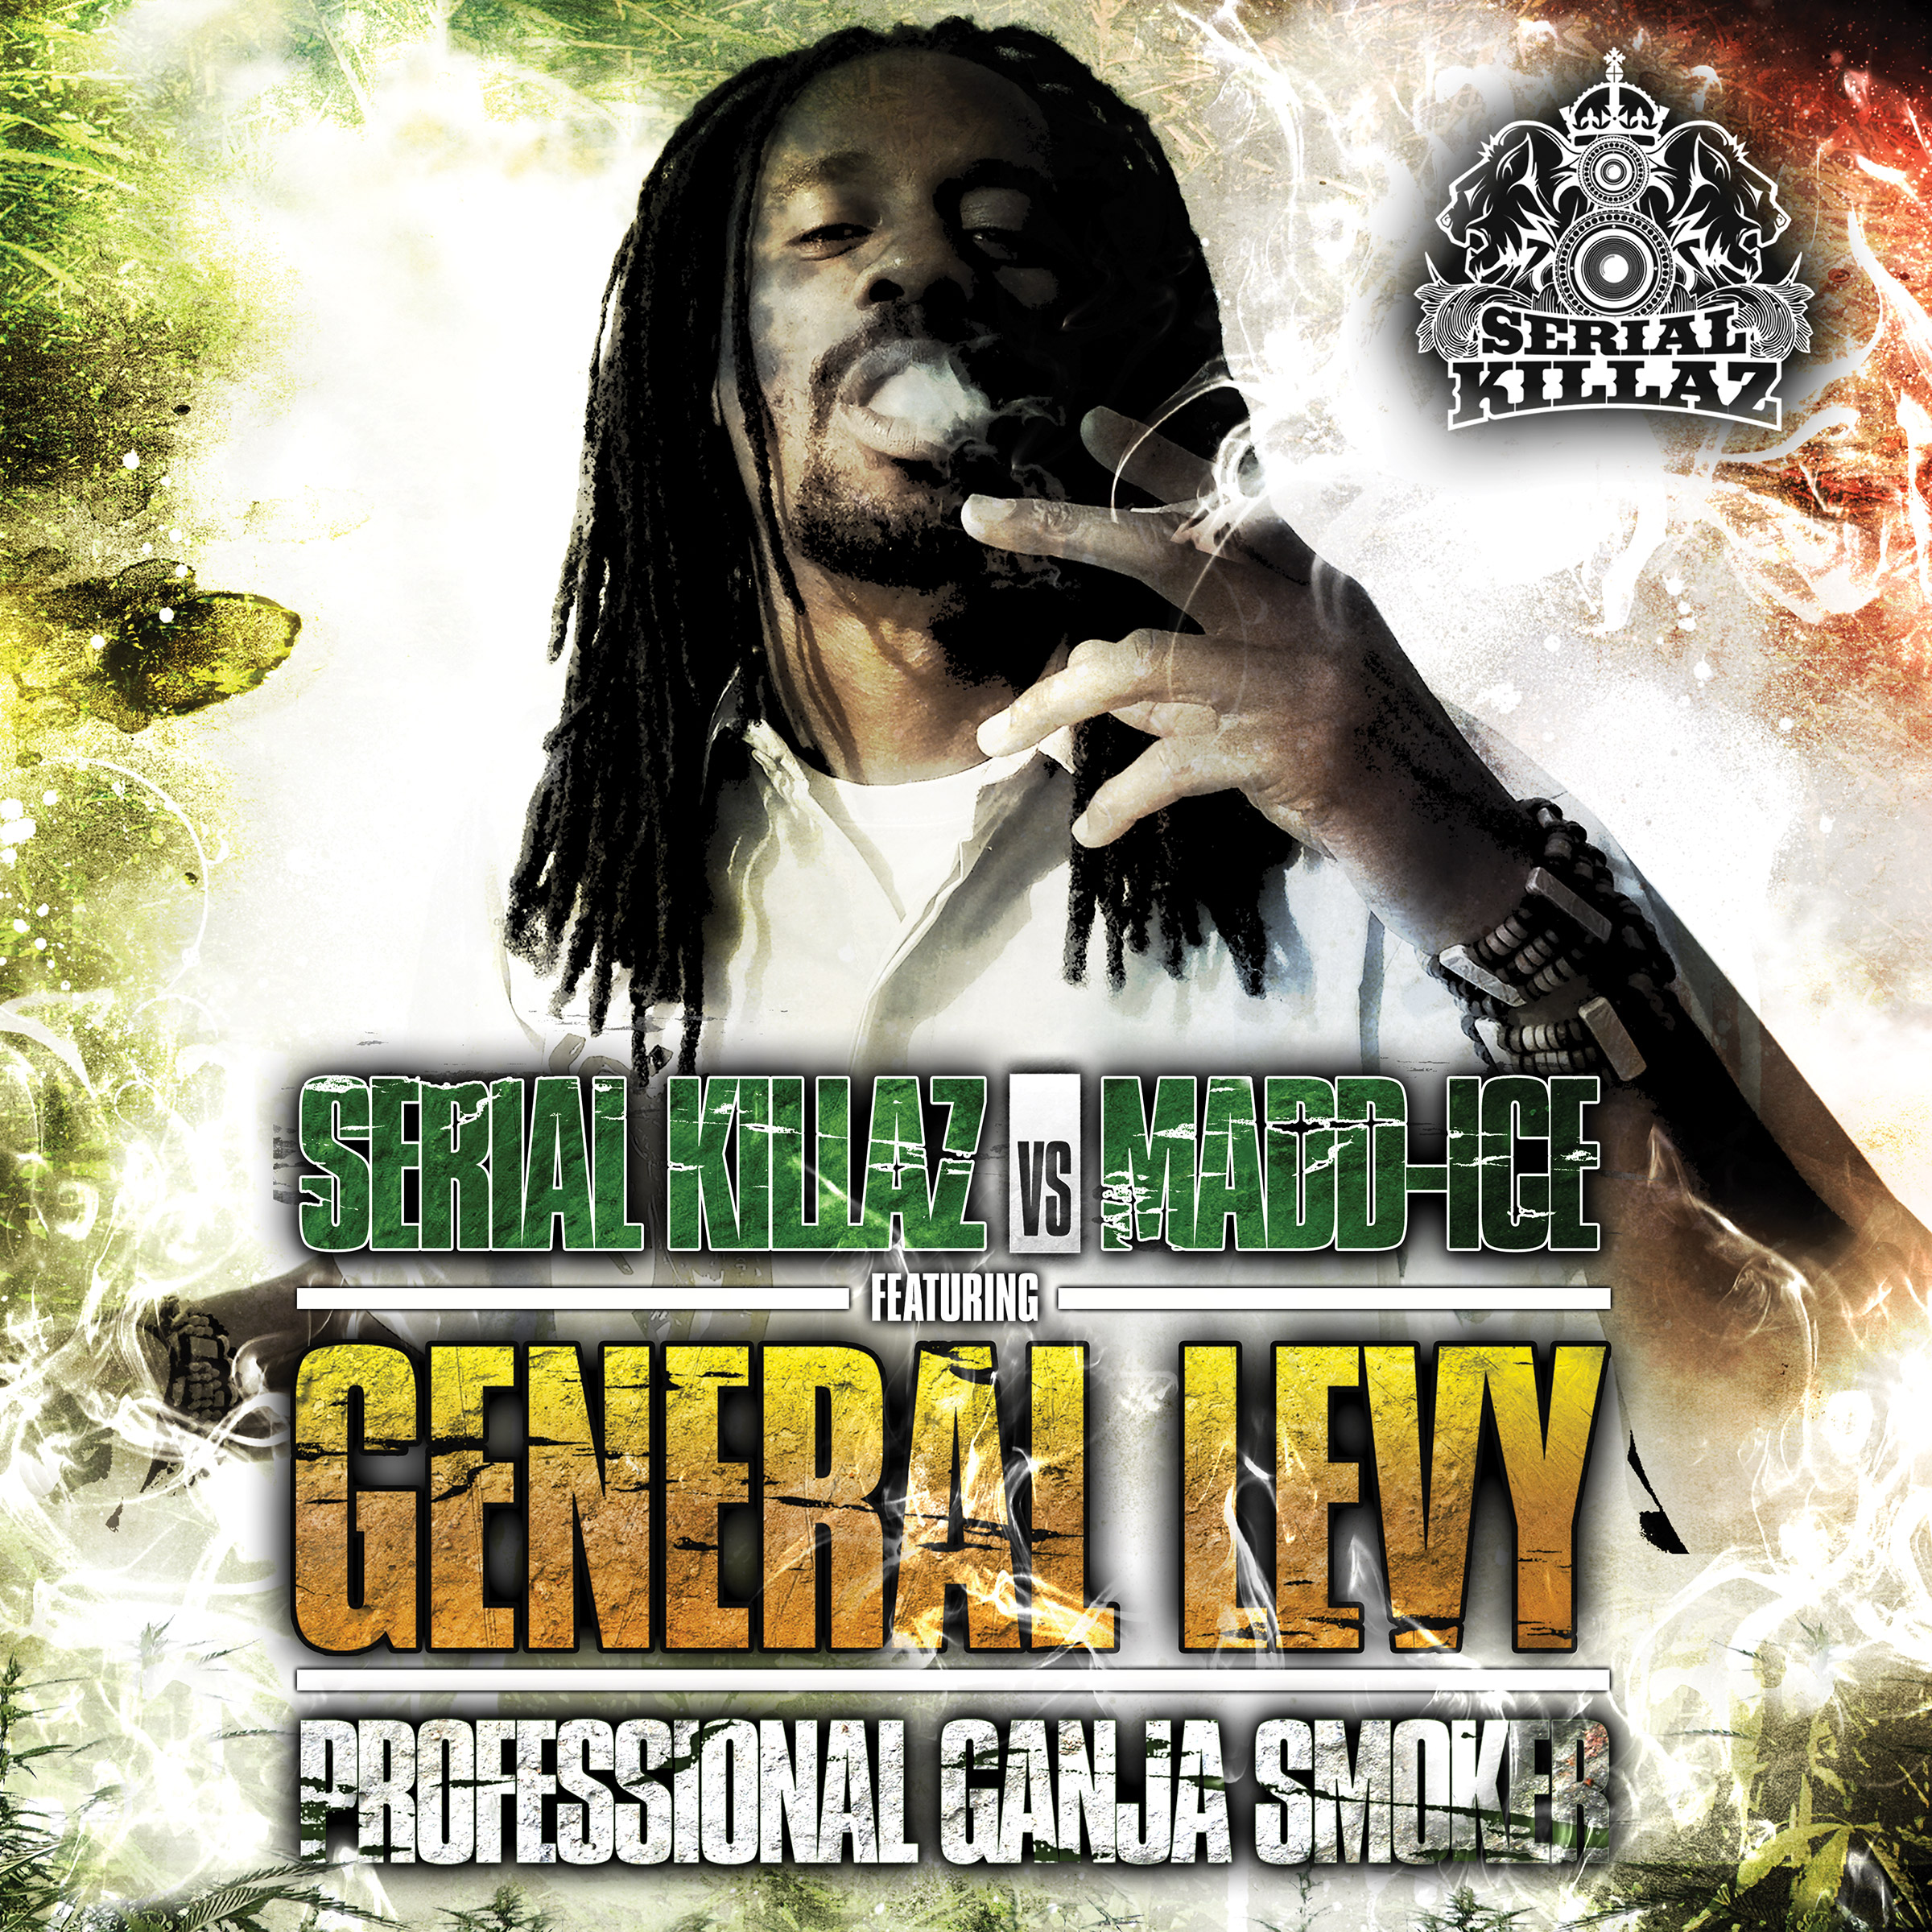 General Levy/PROFESSIONAL GANJA RMX 12""